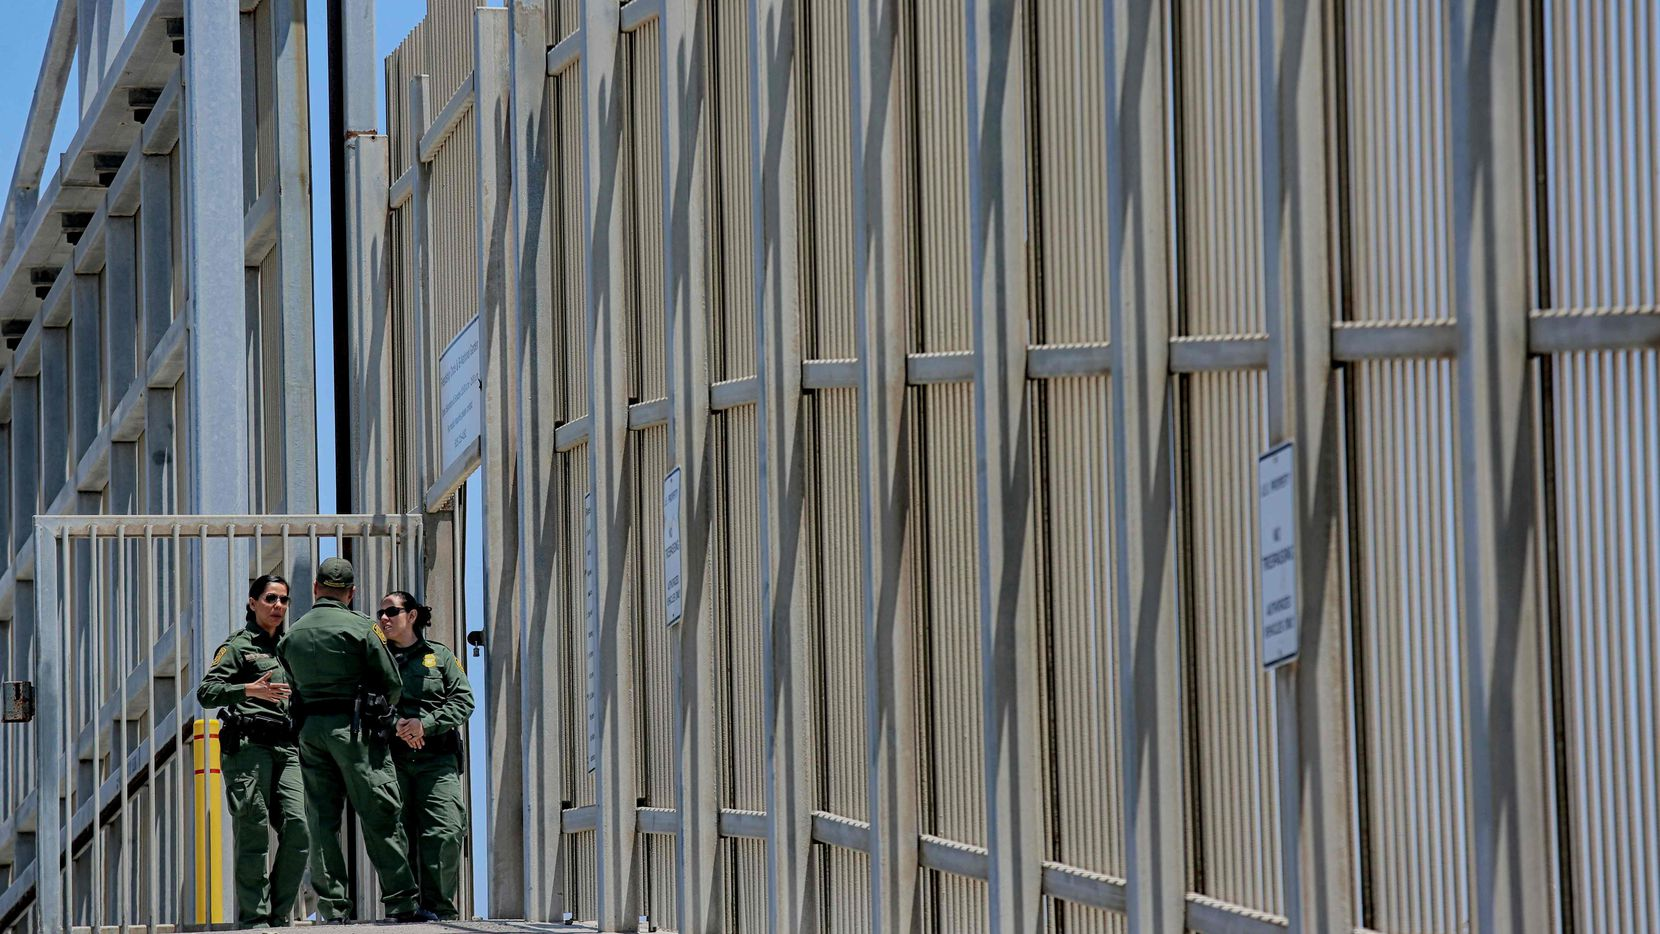 US Customs and Border Protection agents patrol the United States-Mexico Border wall at Friendship Park in San Ysidro, Calif., recently.